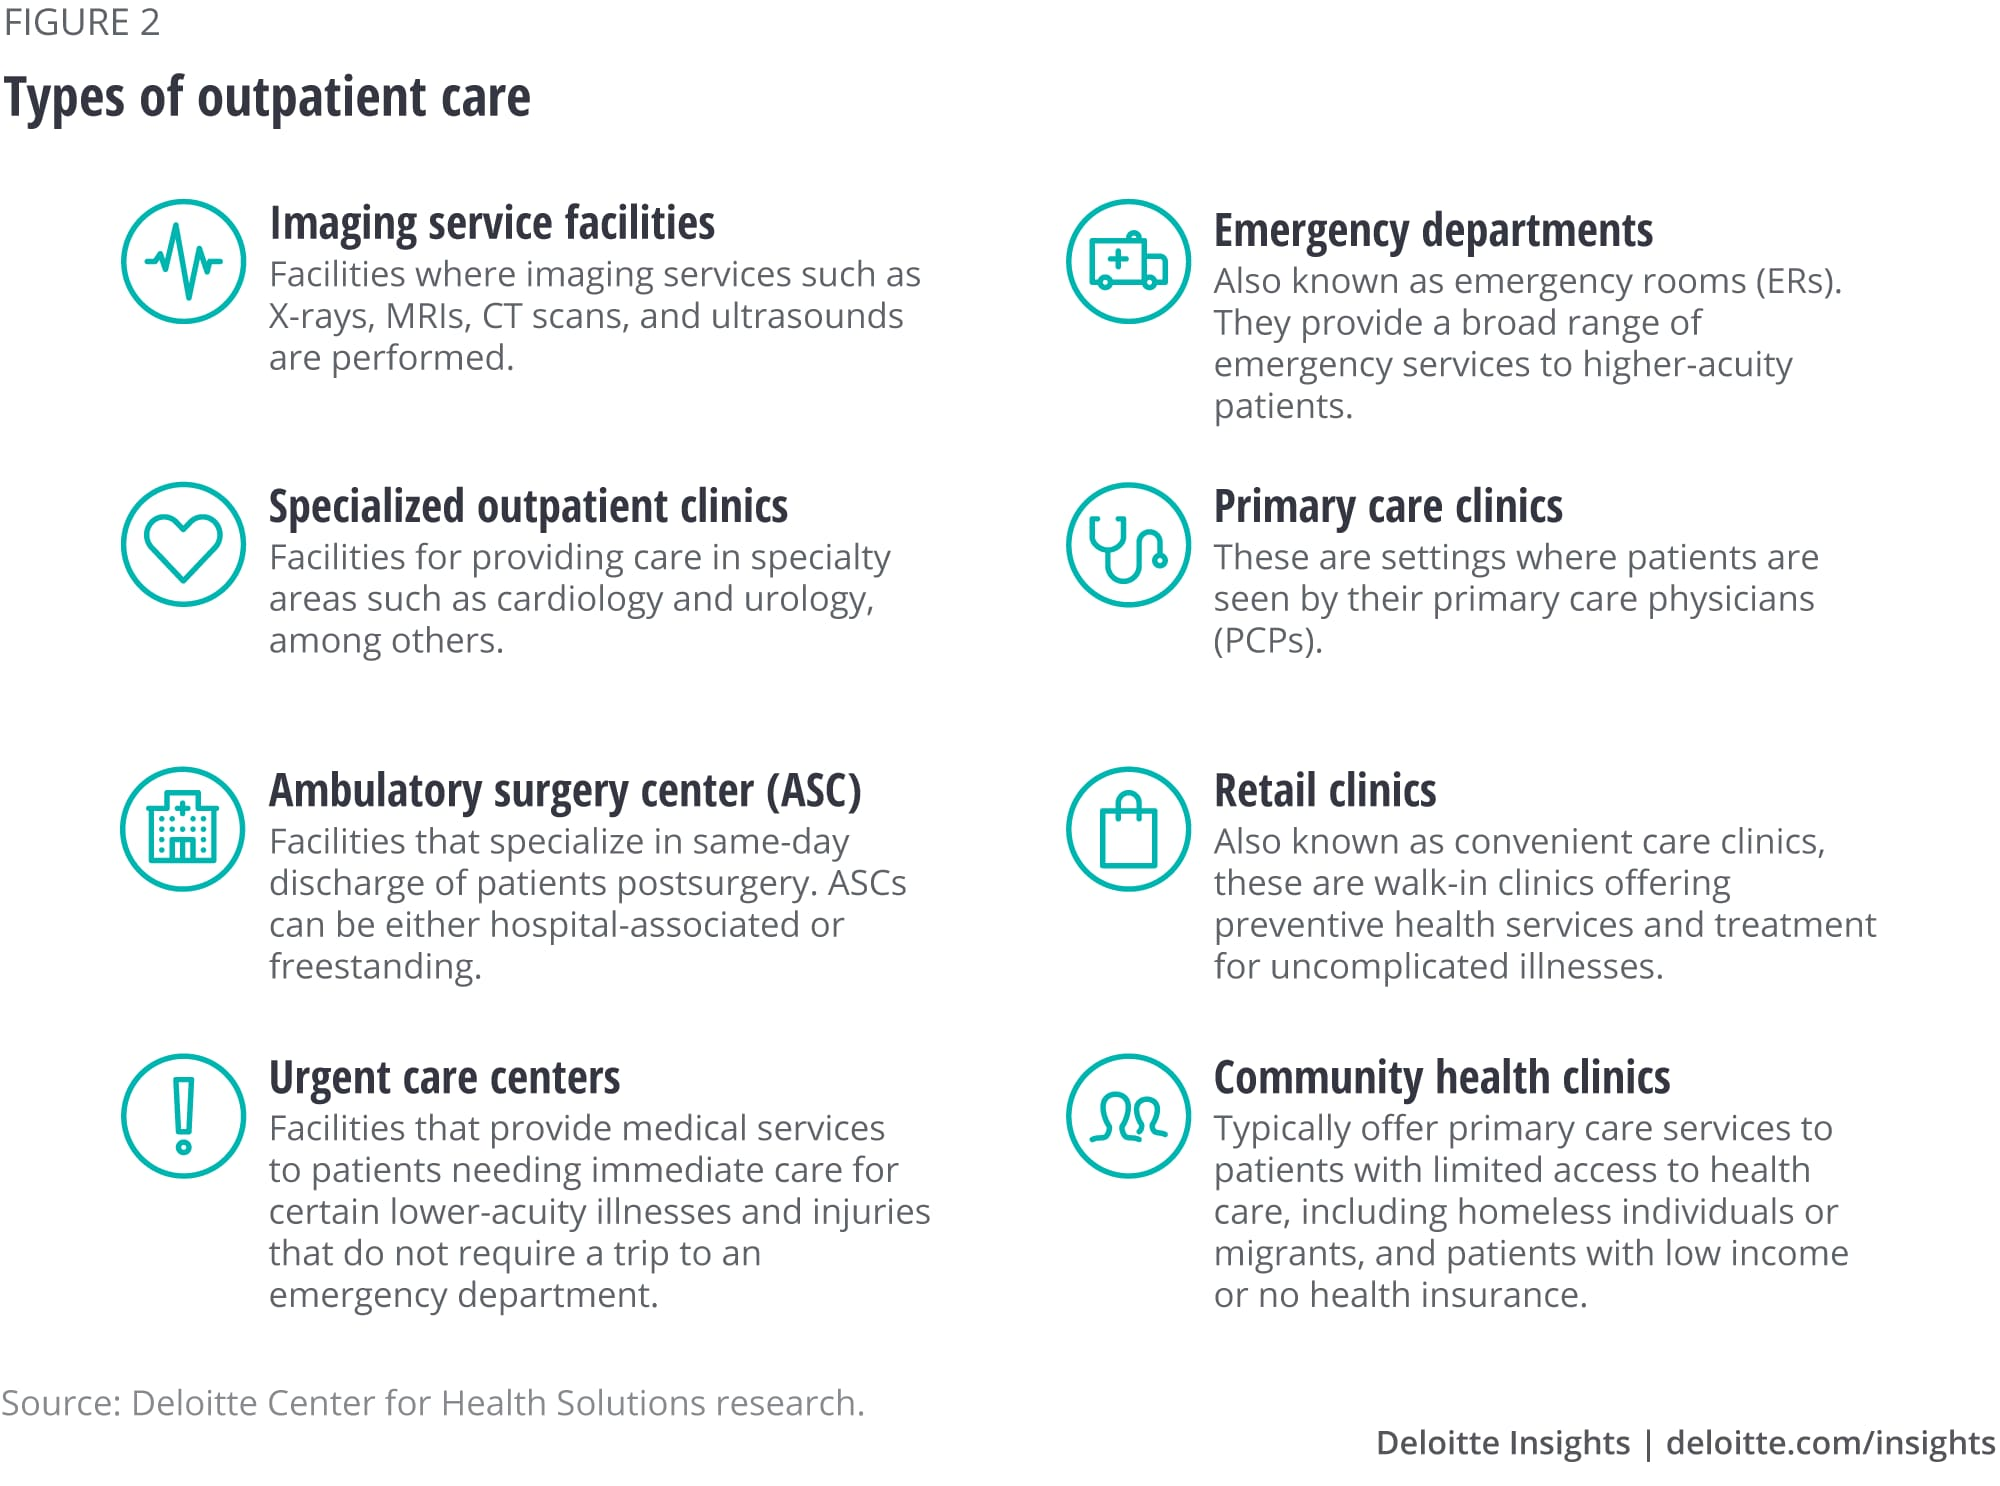 Types of outpatient care